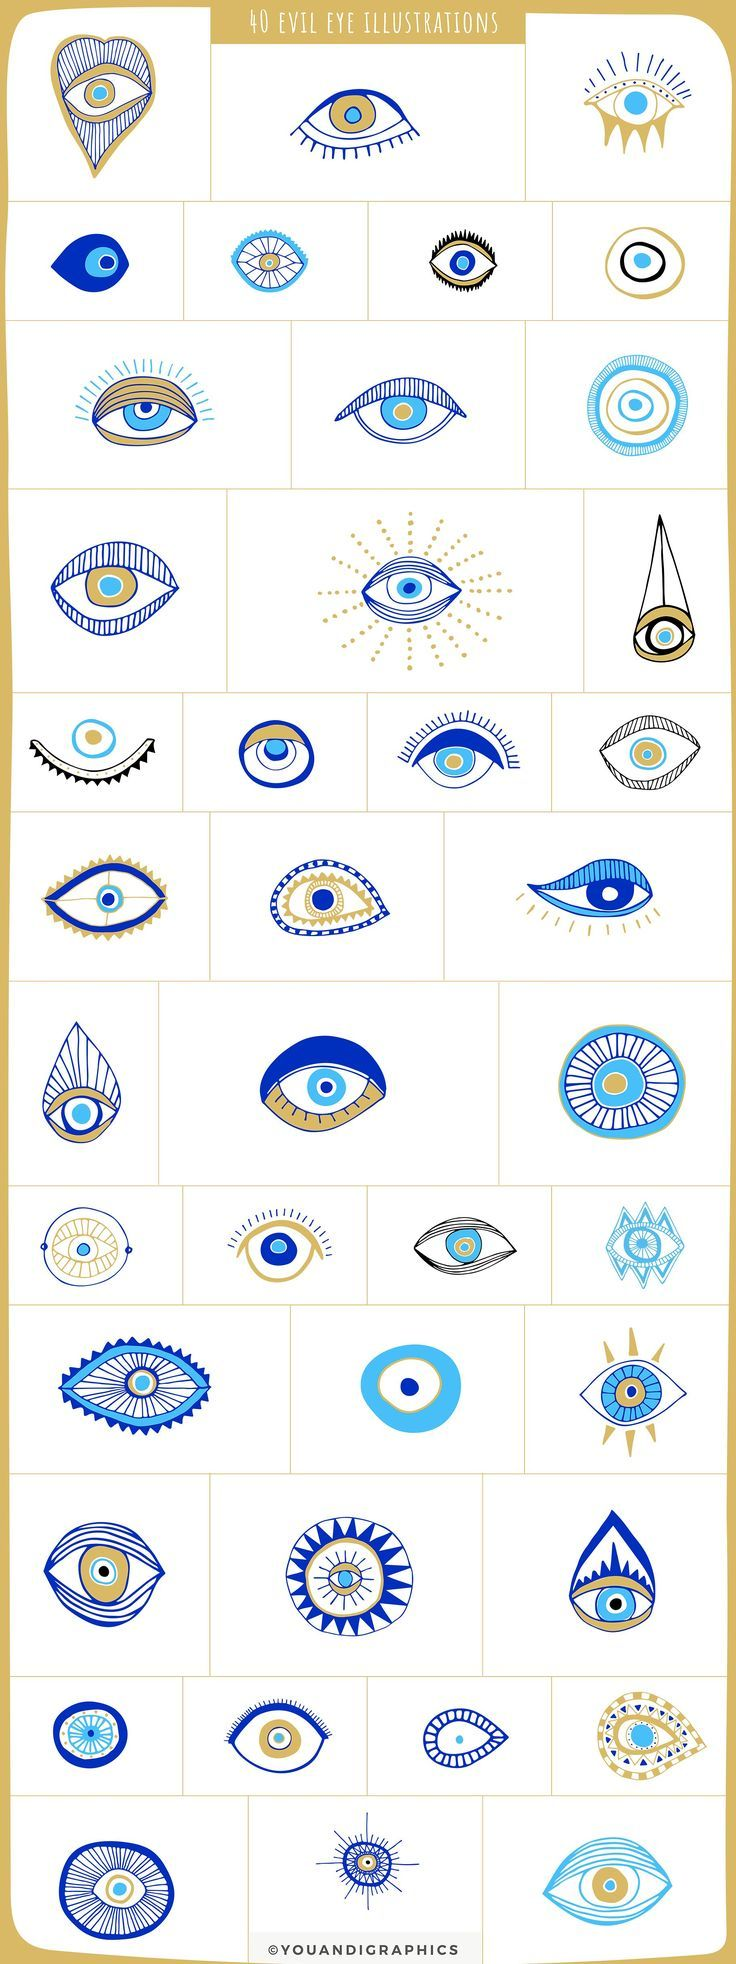 Evil Eye Illustrations + Patterns by Youandigraphics on Creative Market